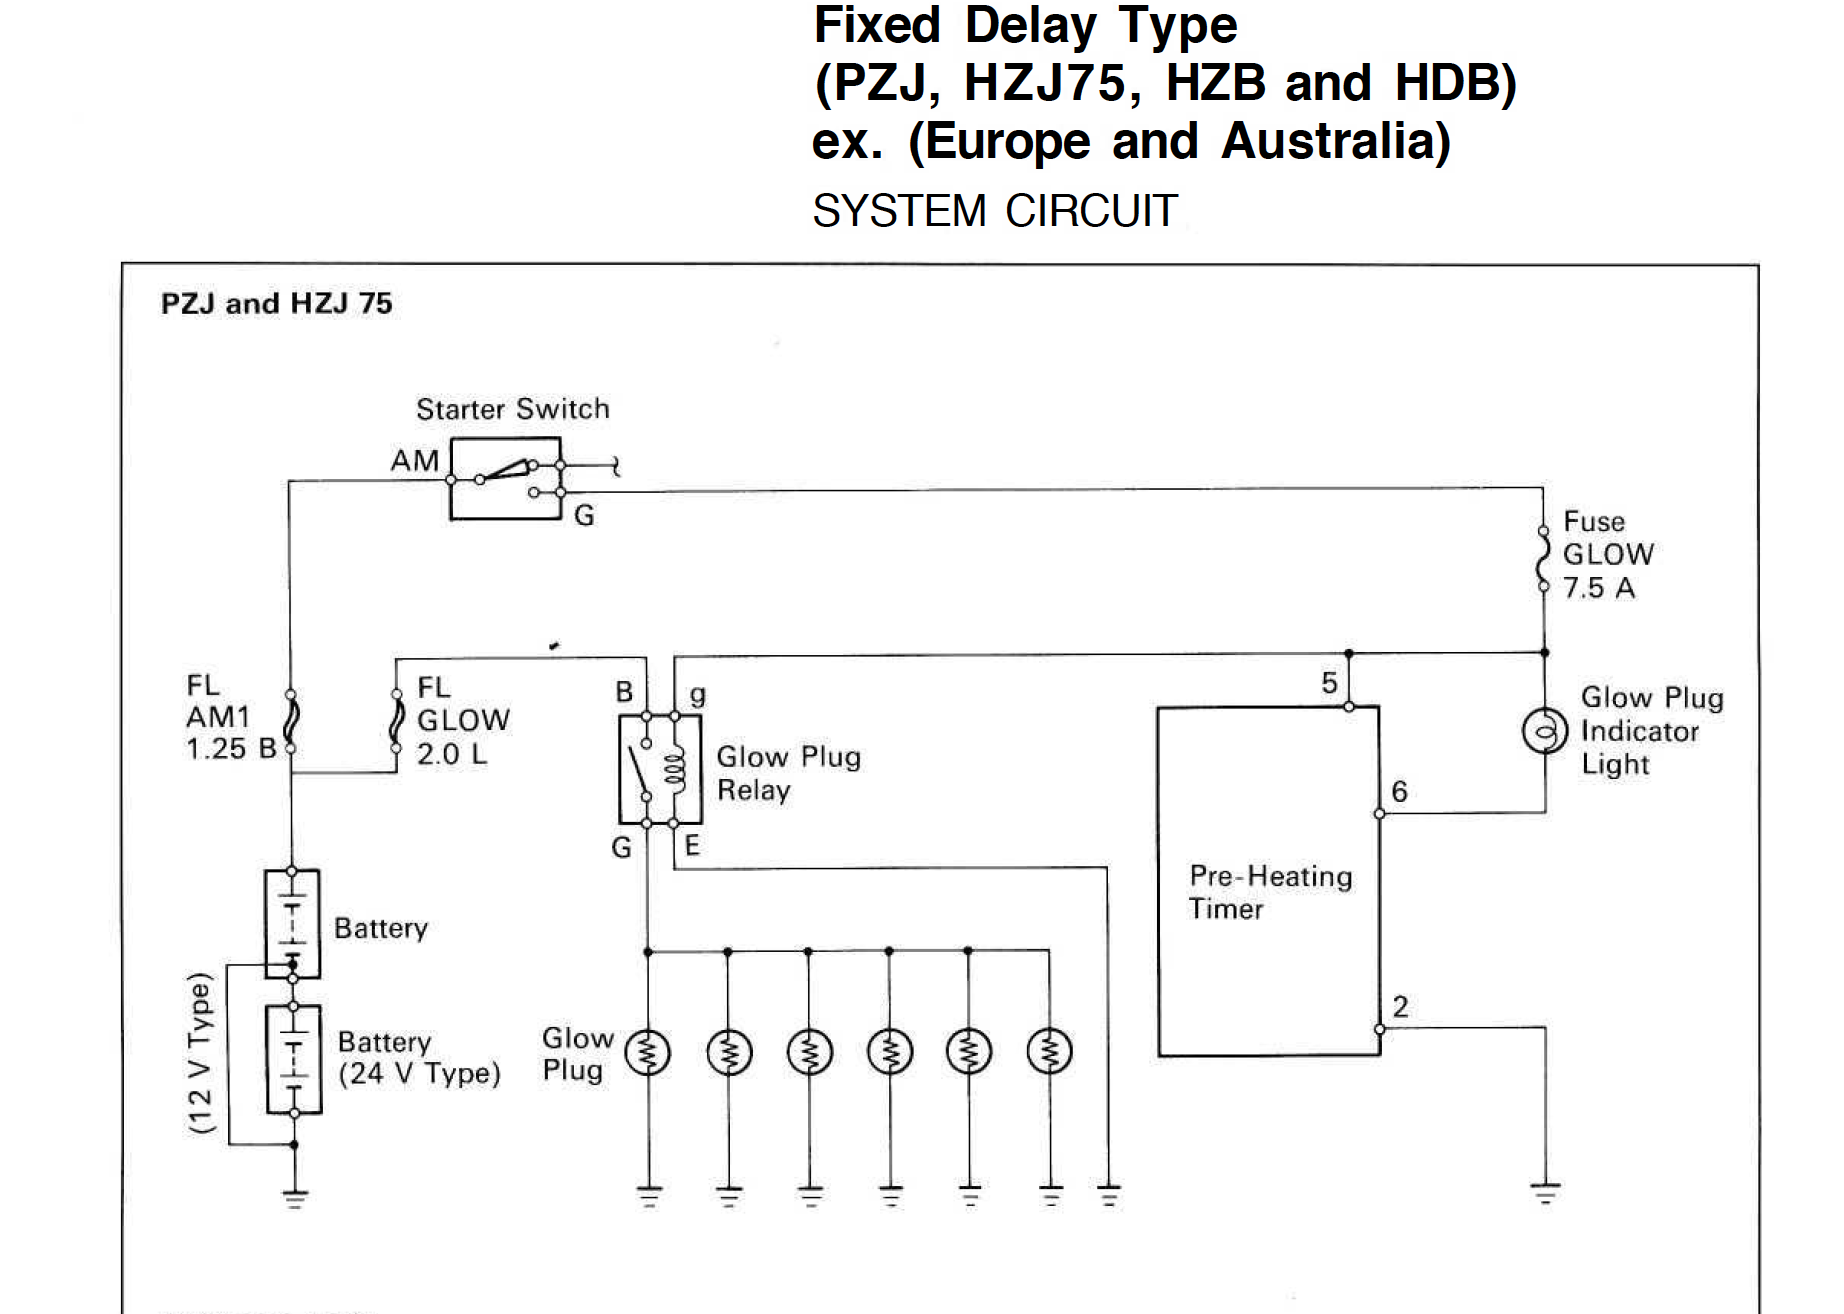 Glow Plug 6 0 Wire Harness System Wiring Schematics Controller Help Needed Understanding The Different Hzj75 Systems Rh Forum Ih8mud Com 60 Removal Tool Powerstroke Relay